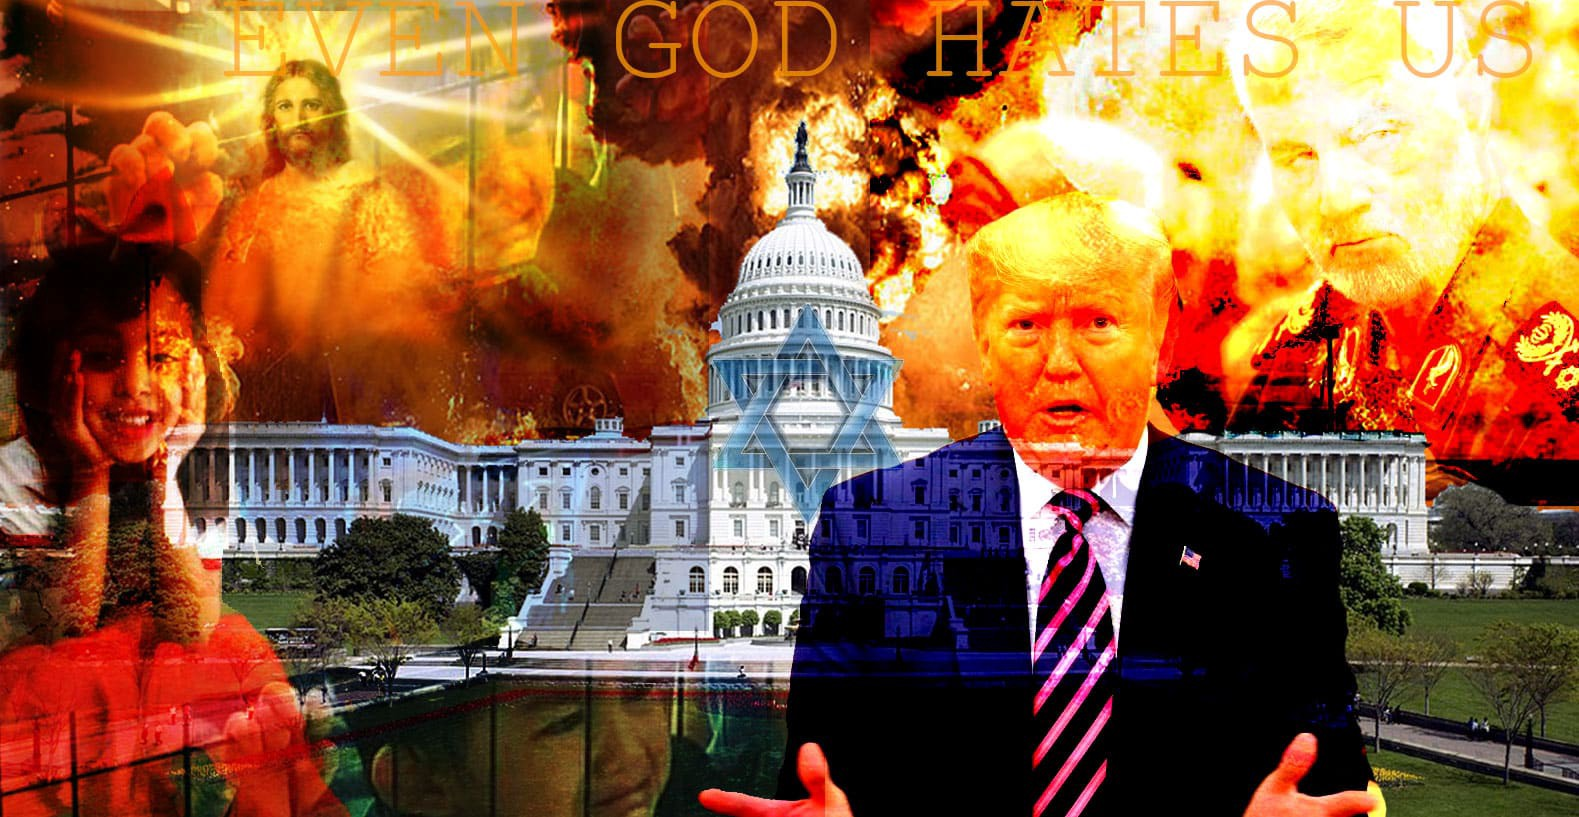 God hates us amid our burning due to Trump's crimes